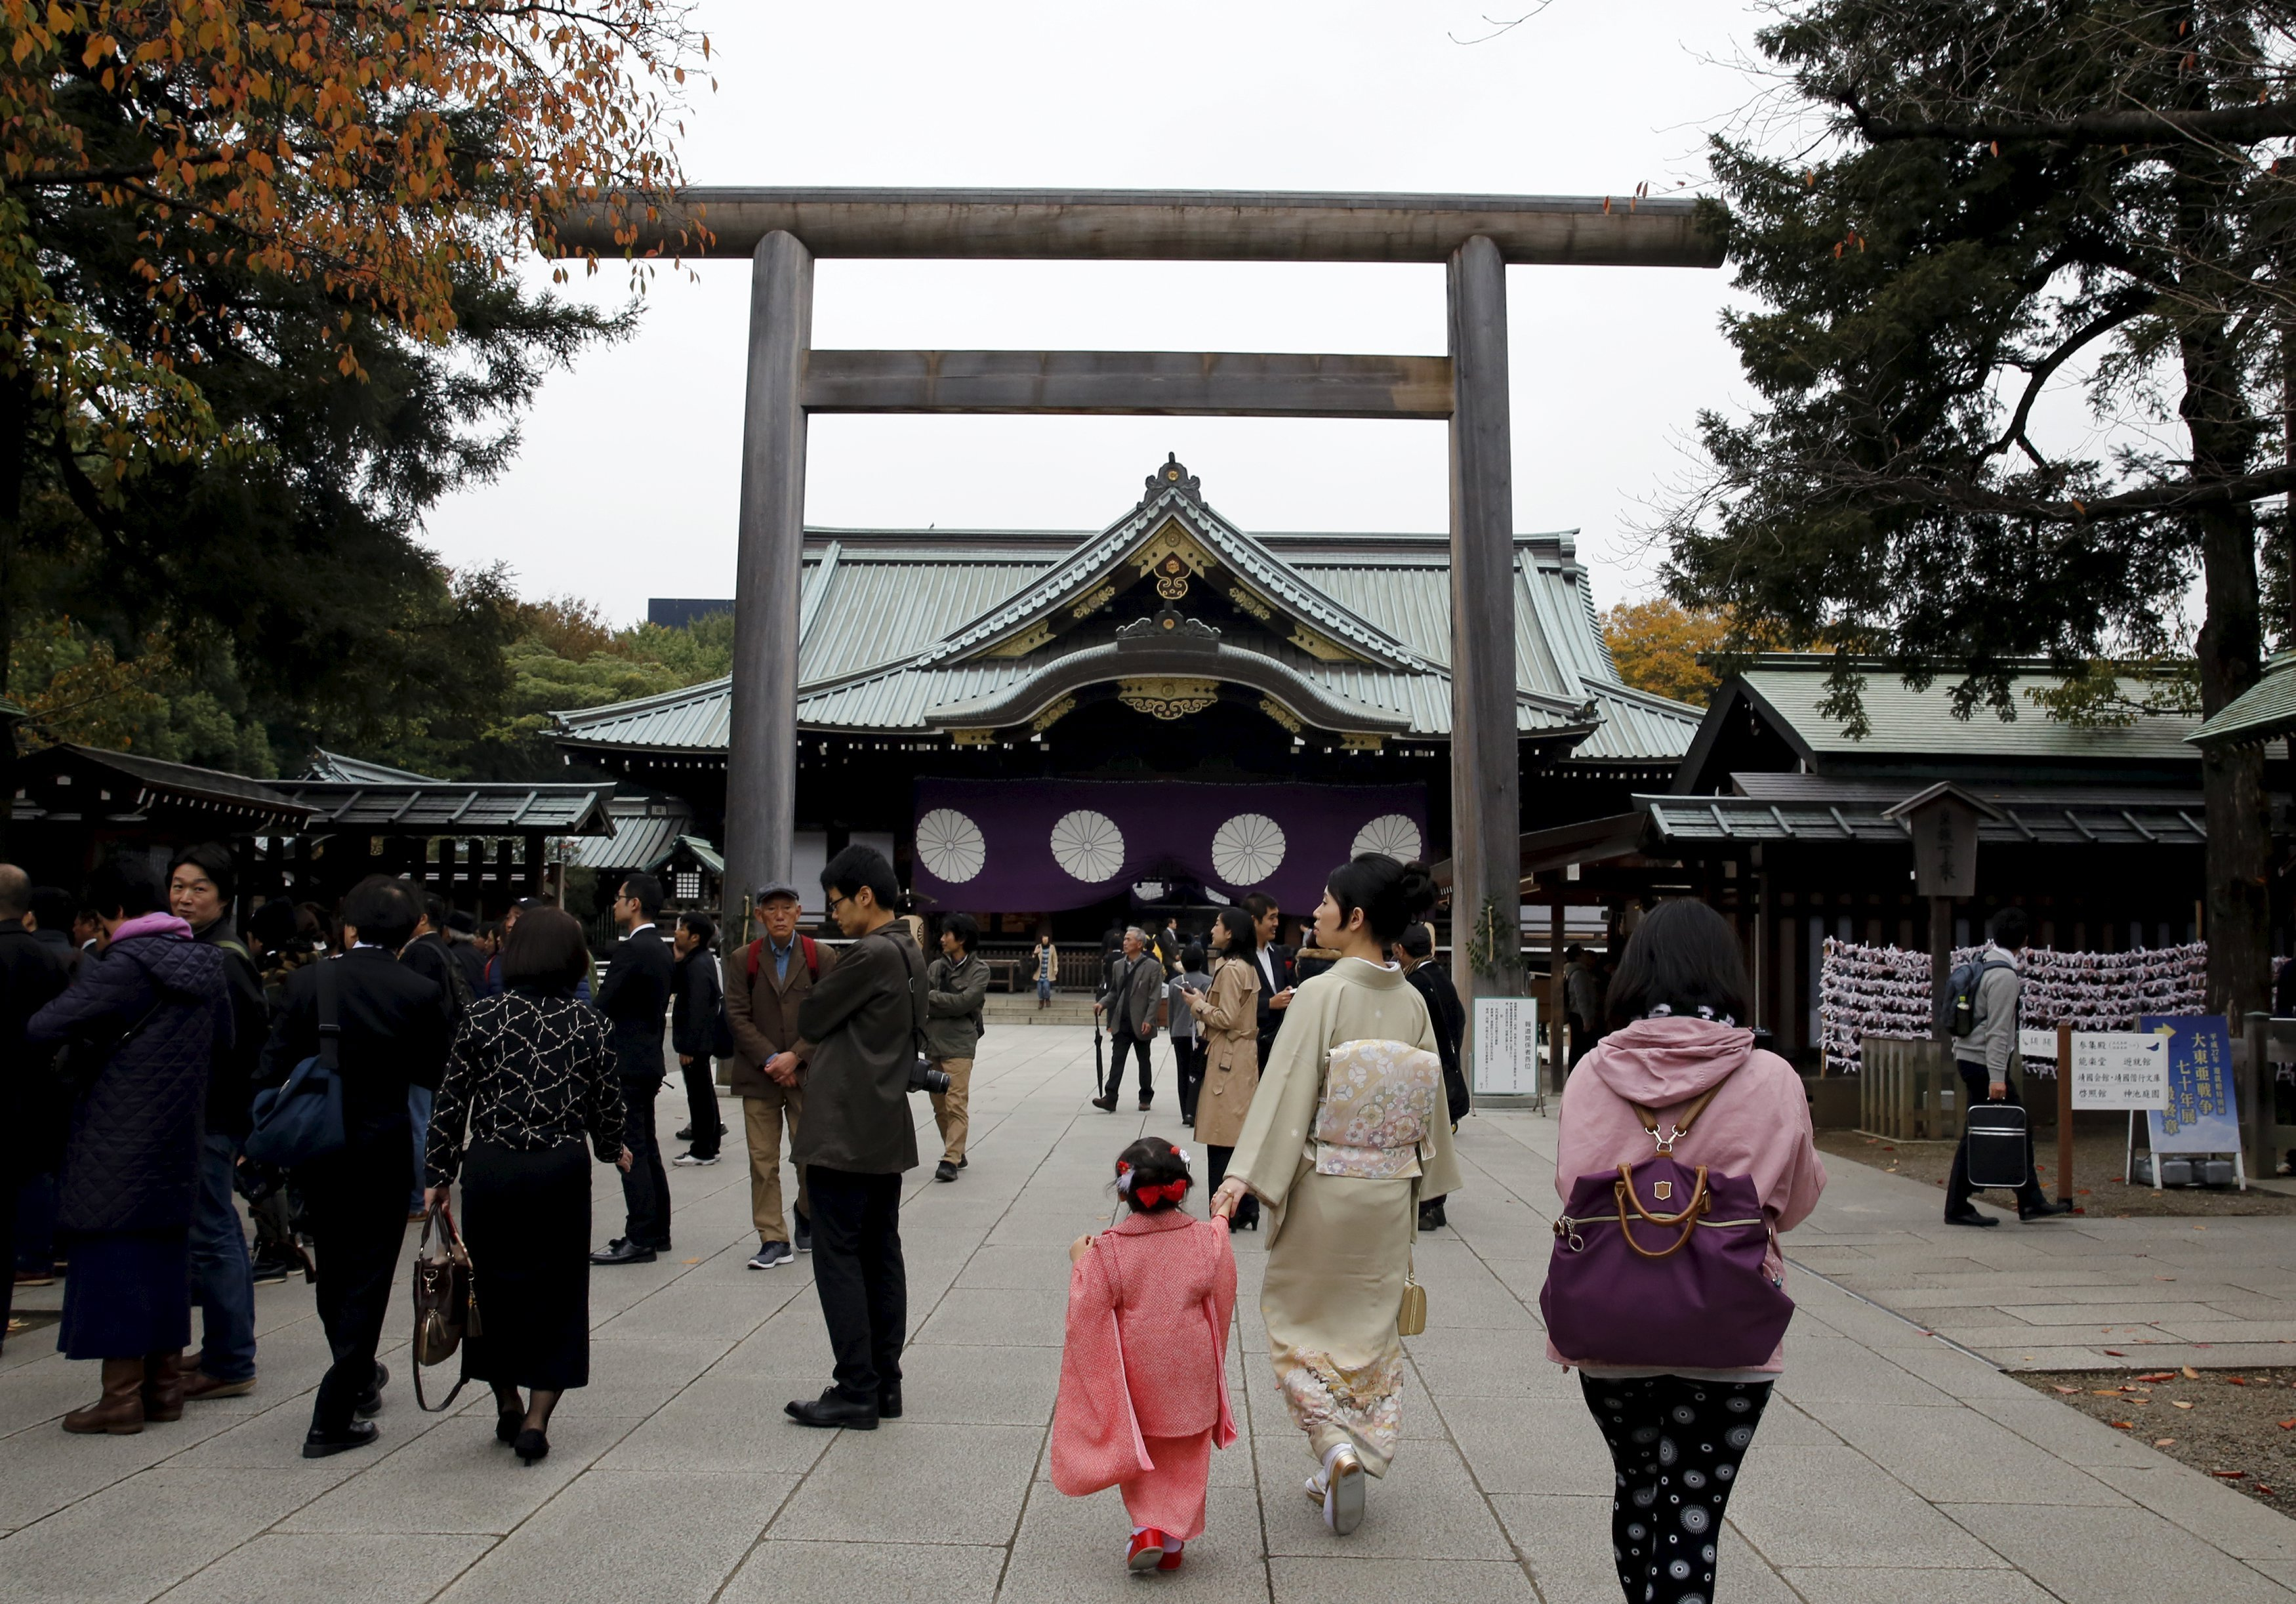 People walk near the main shrine after a blast at the precinct of the Yasukuni shrine in Tokyo, Japan, November 23, 2015